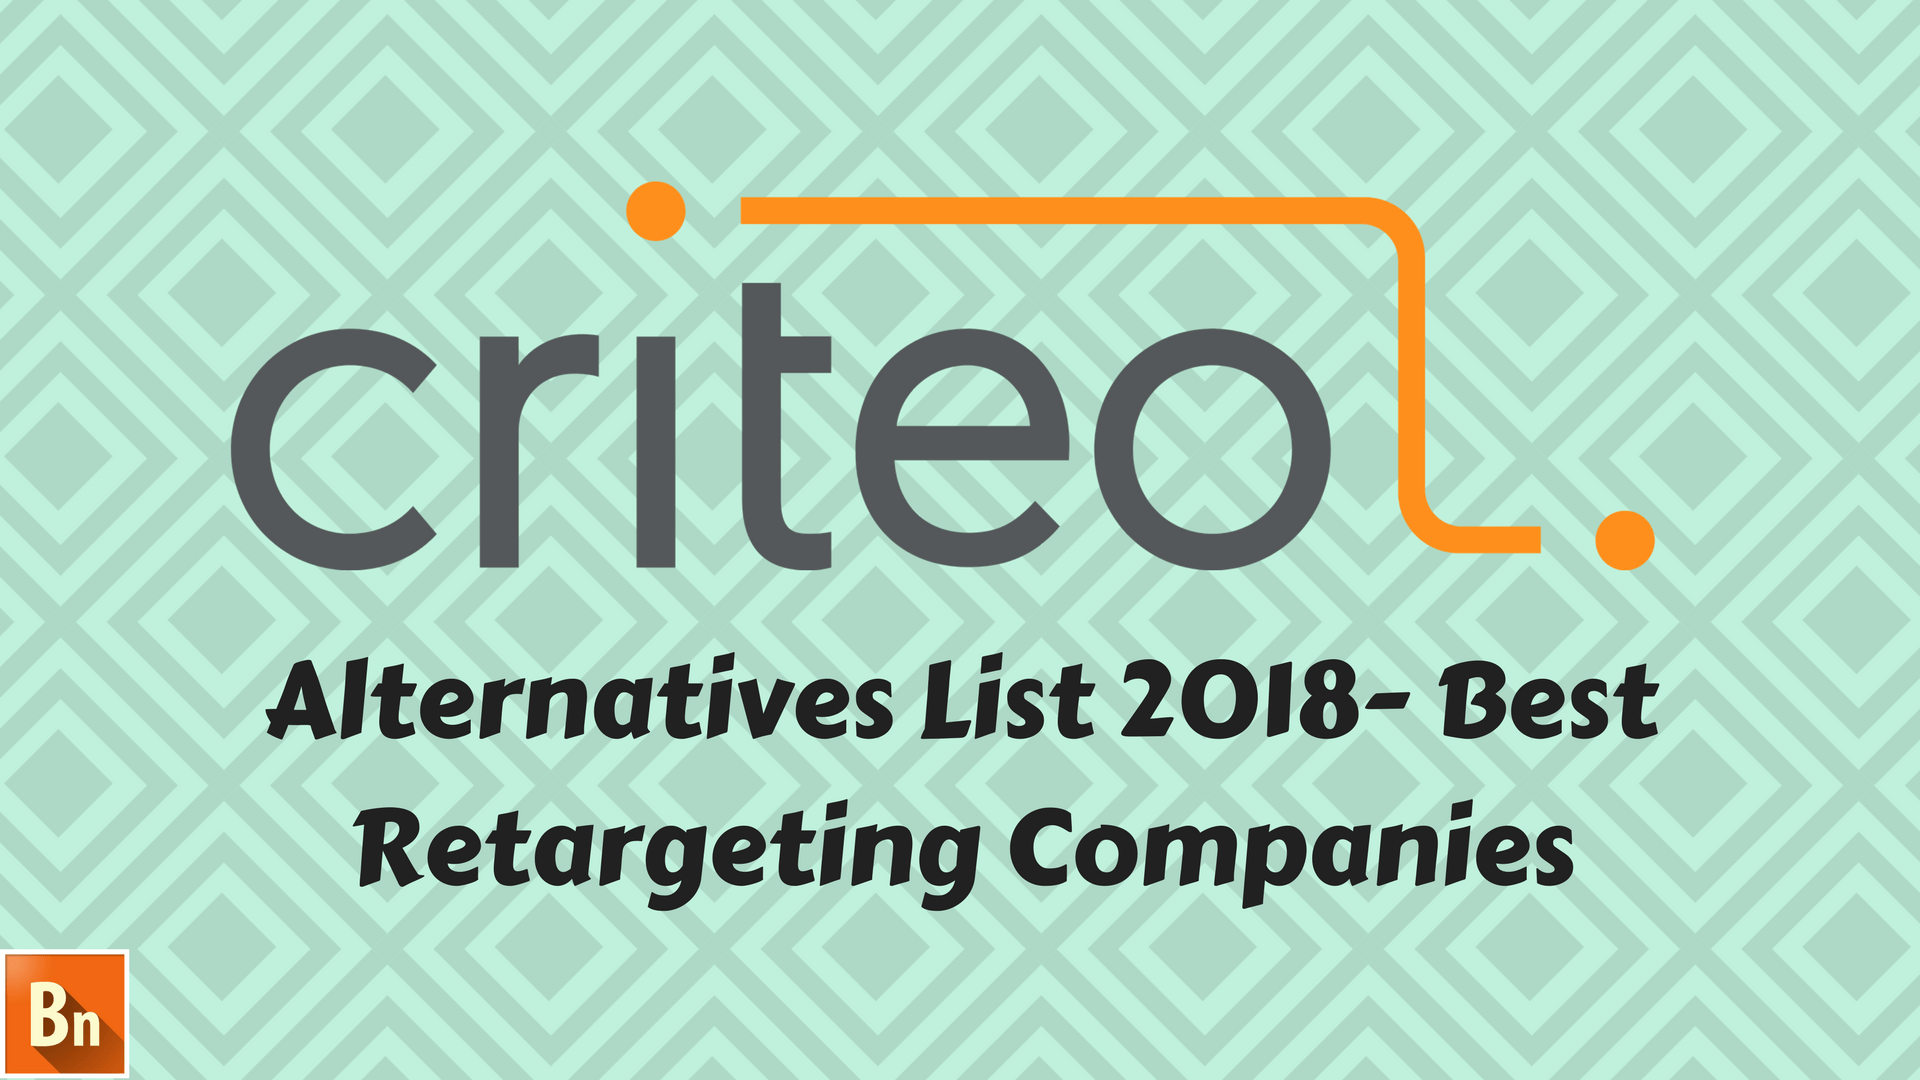 Criteo Alternatives List 2020- Best Retargeting Companies